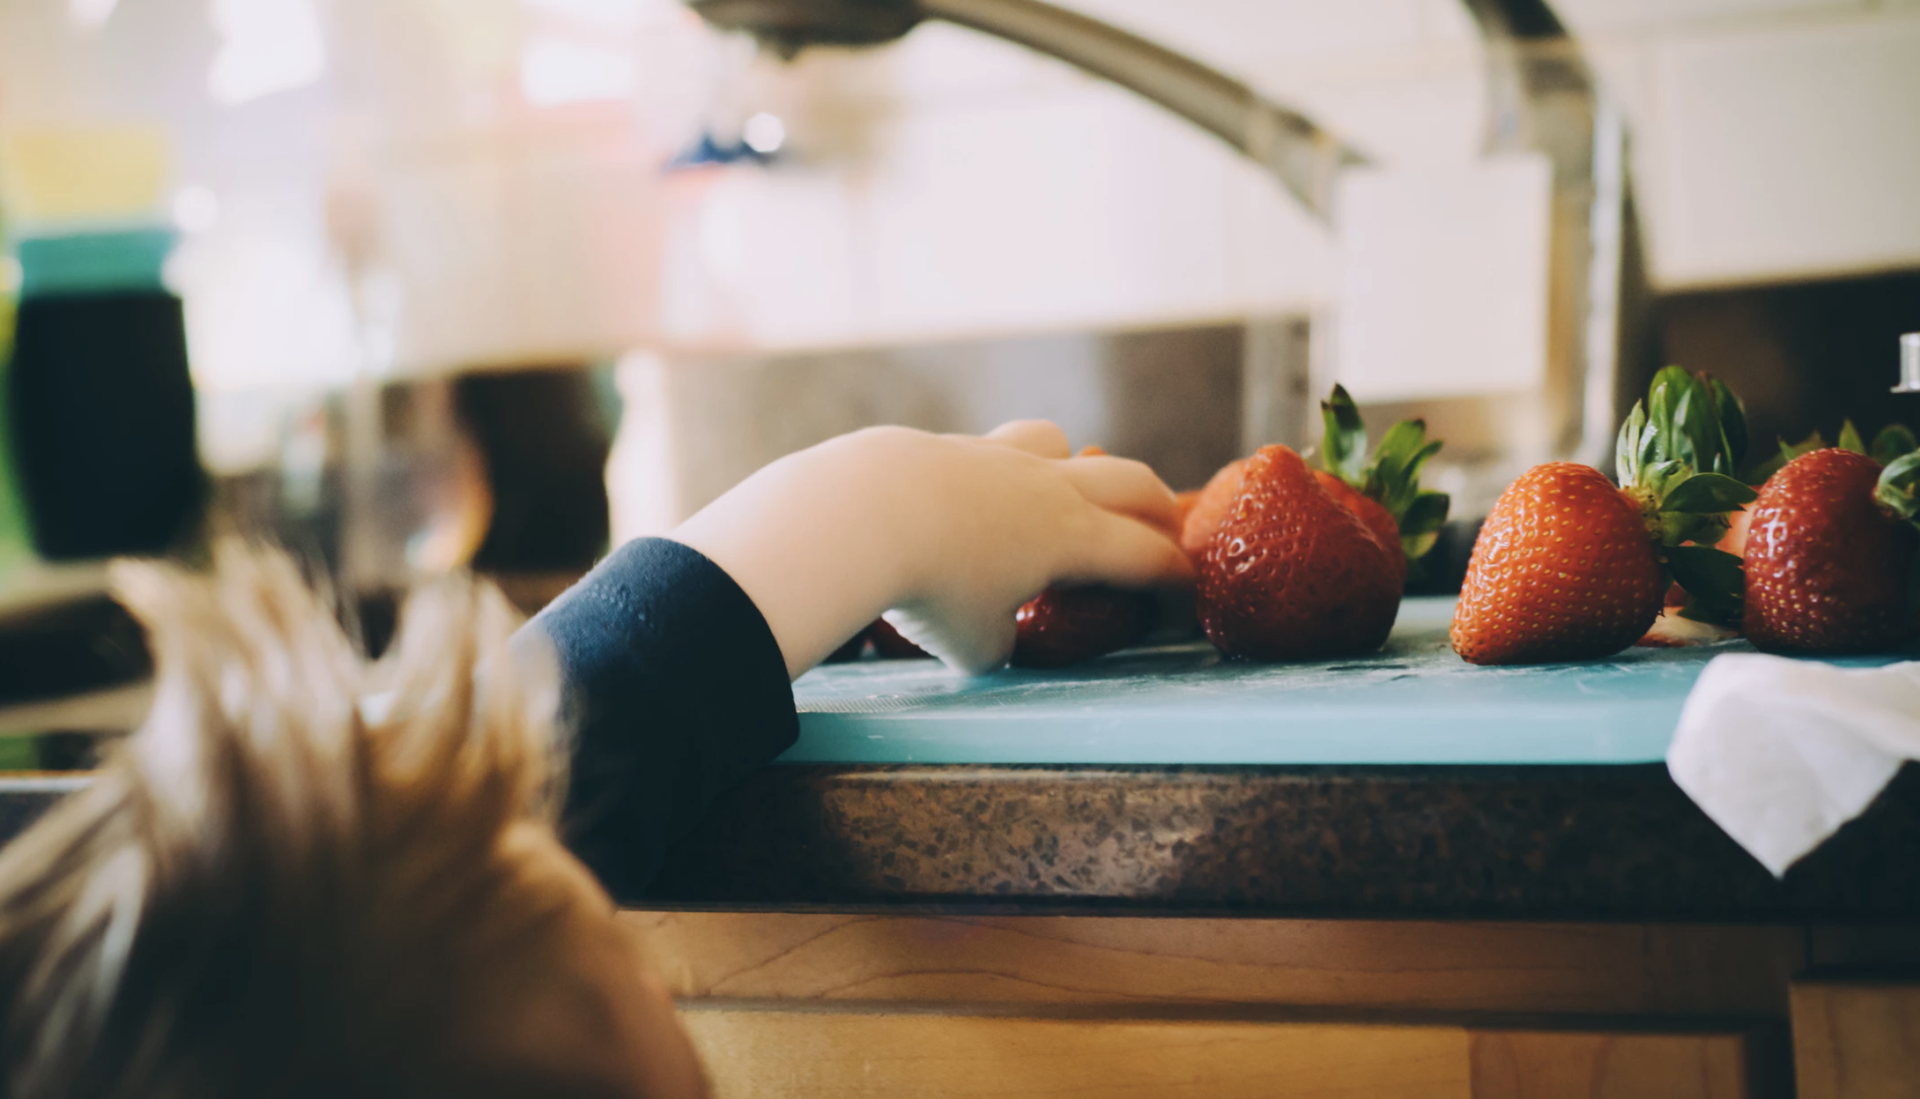 Revamping the Making of School Lunches